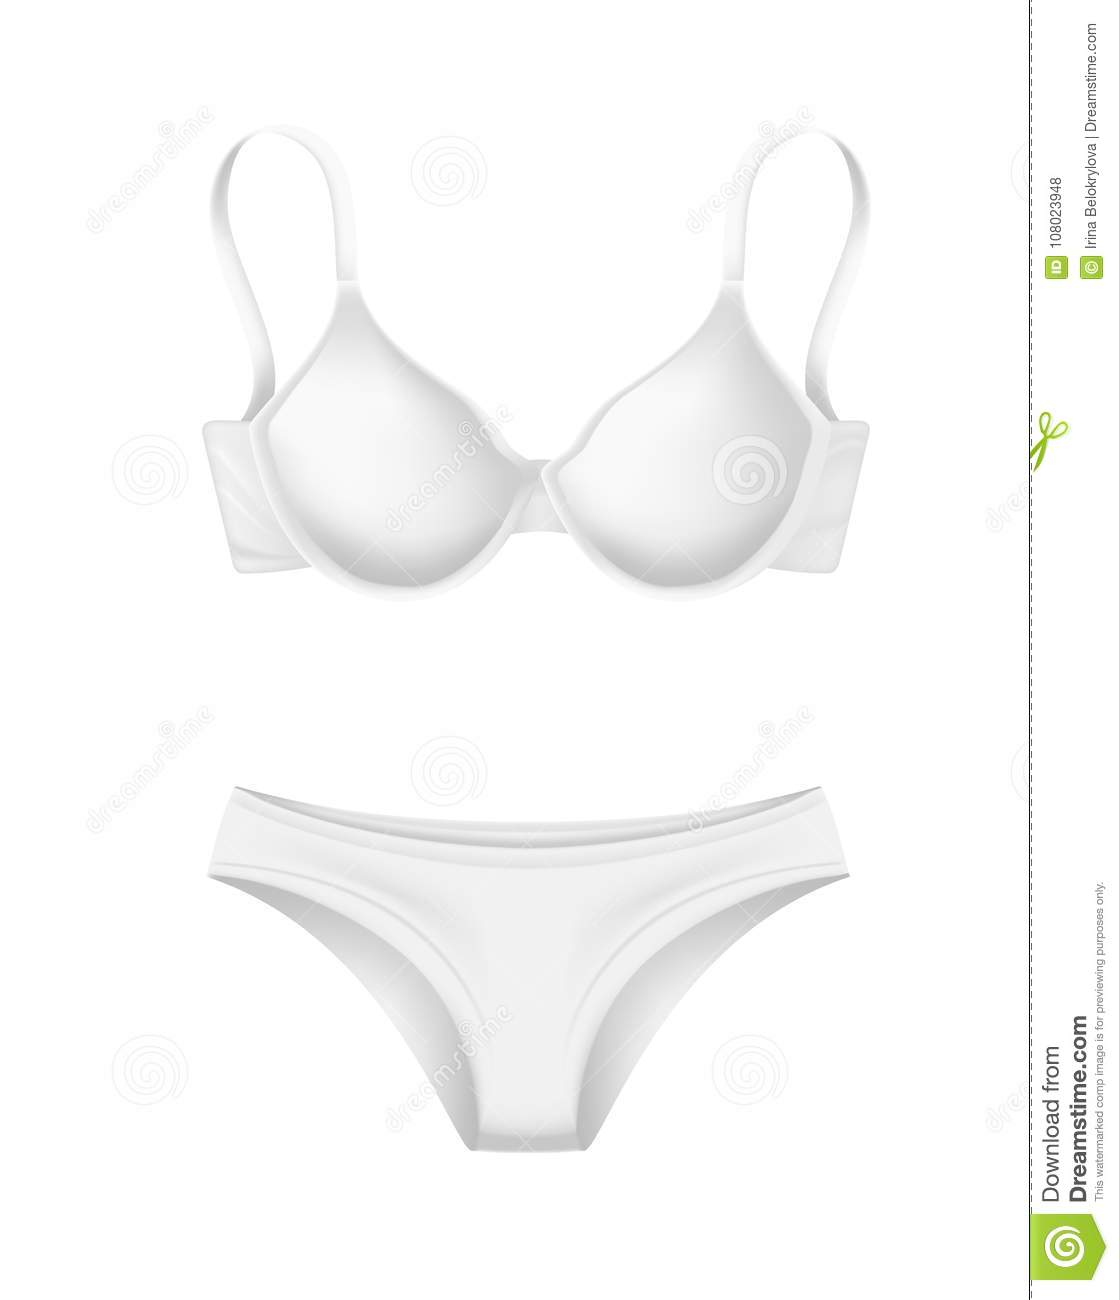 412c5a0e384 Vector realistic white woman panties, bra mockup. Classic female underwear.  Women fashion clothing design template, front view.